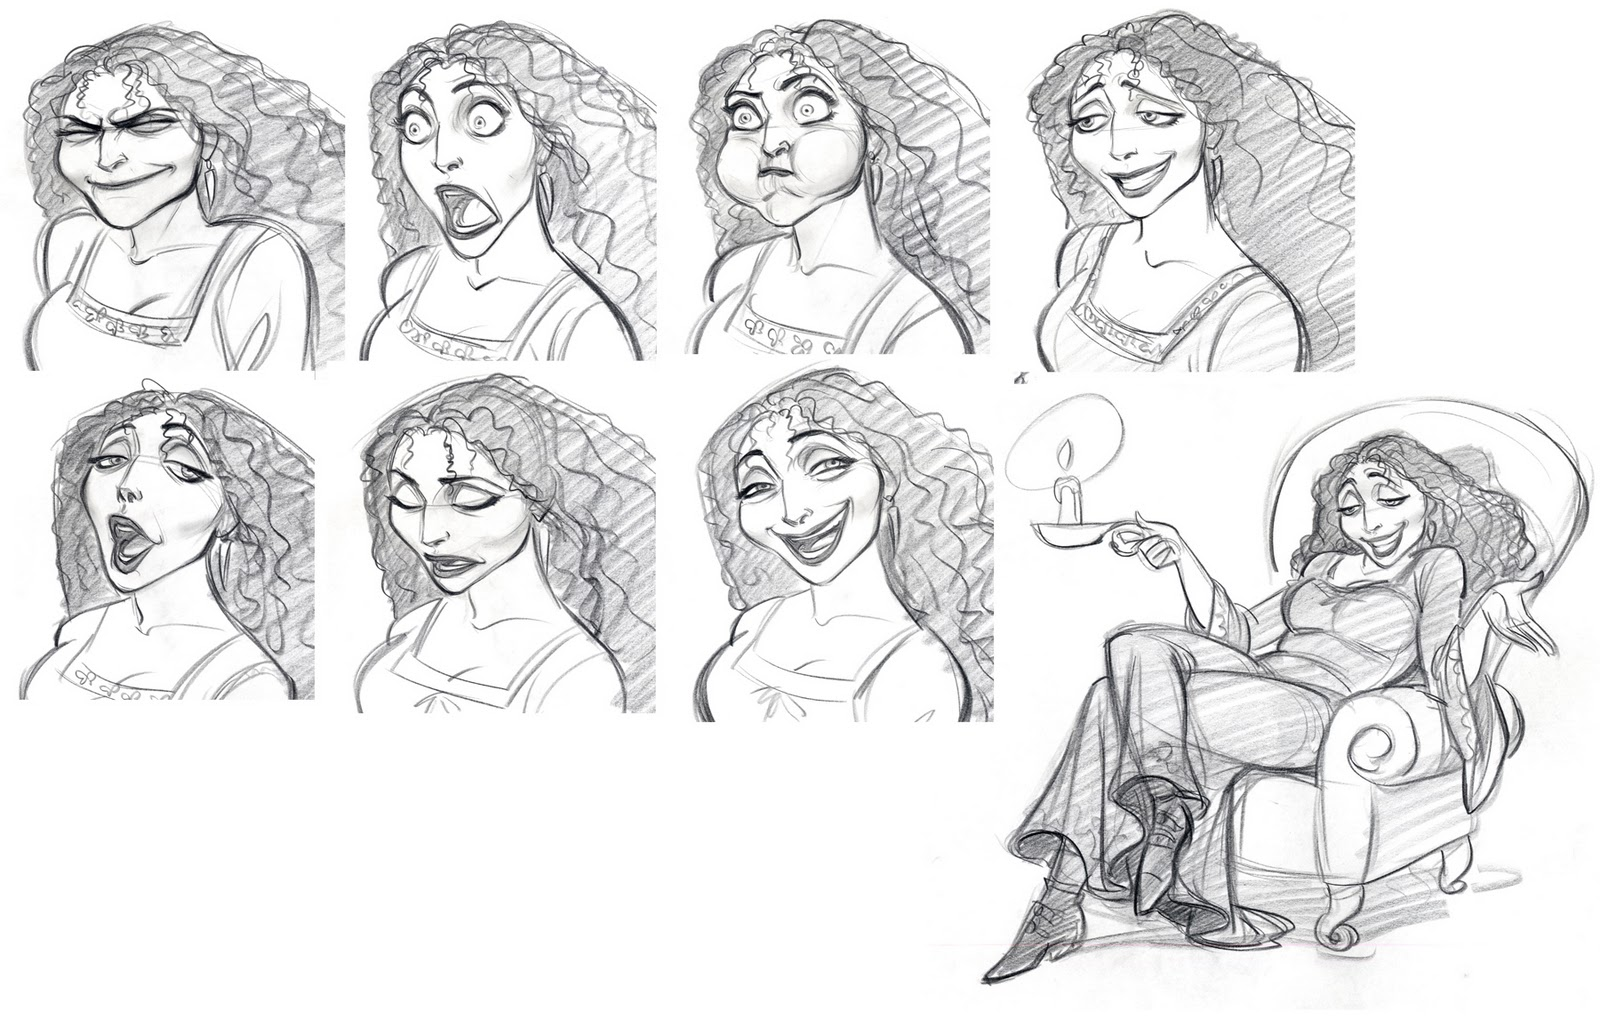 Character Design Up : Cartoon concept design tangled sketches and characters